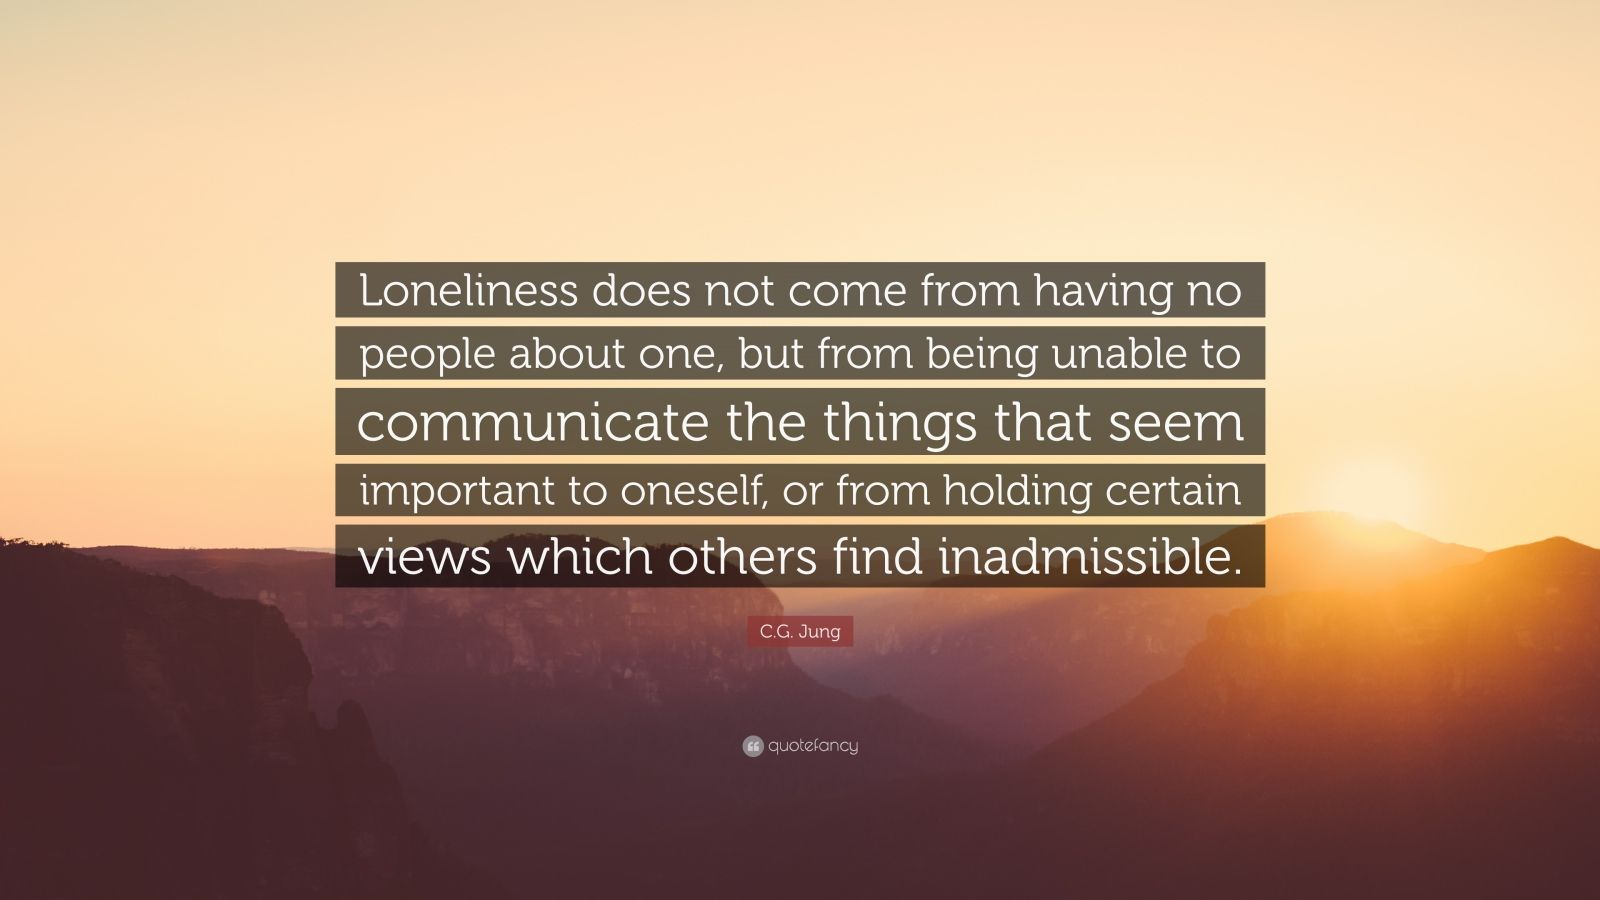 "C.G. Jung Quote: ""Loneliness does not come from having no people about one, but from being unable to communicate the things that seem important to oneself, or from holding certain views which others find inadmissible."""